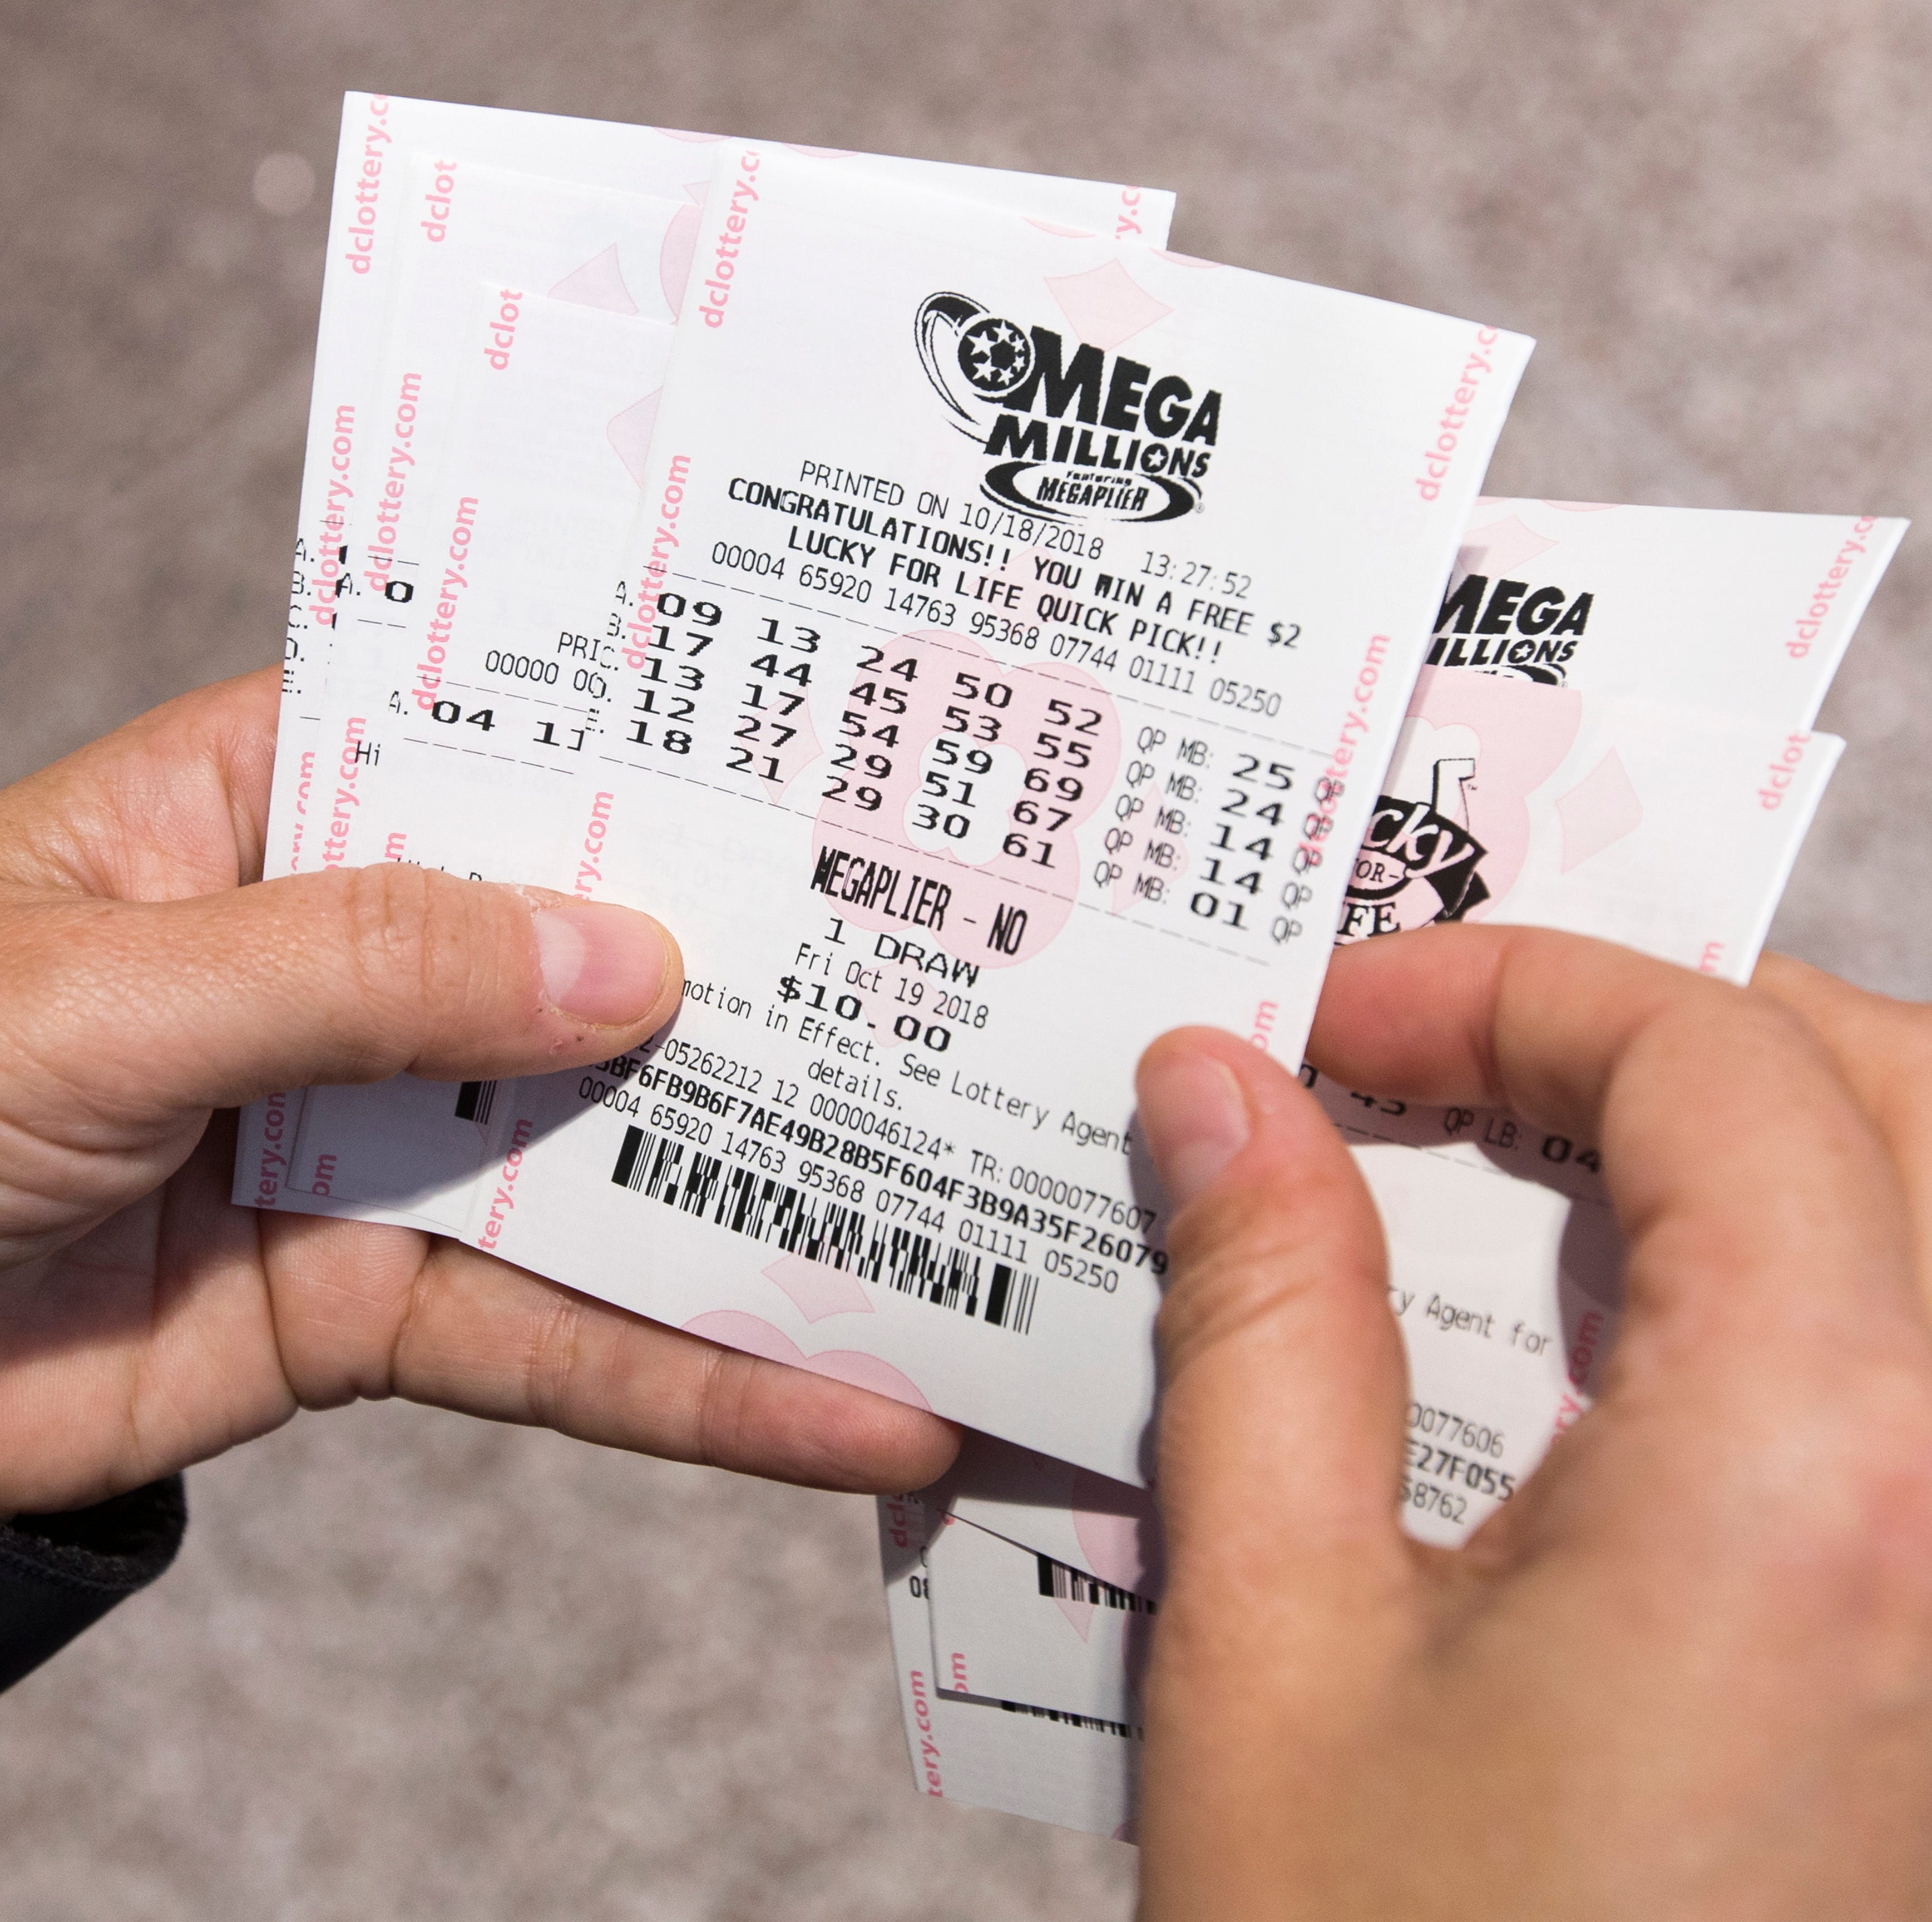 Friday's $1 billion Mega Millions numbers